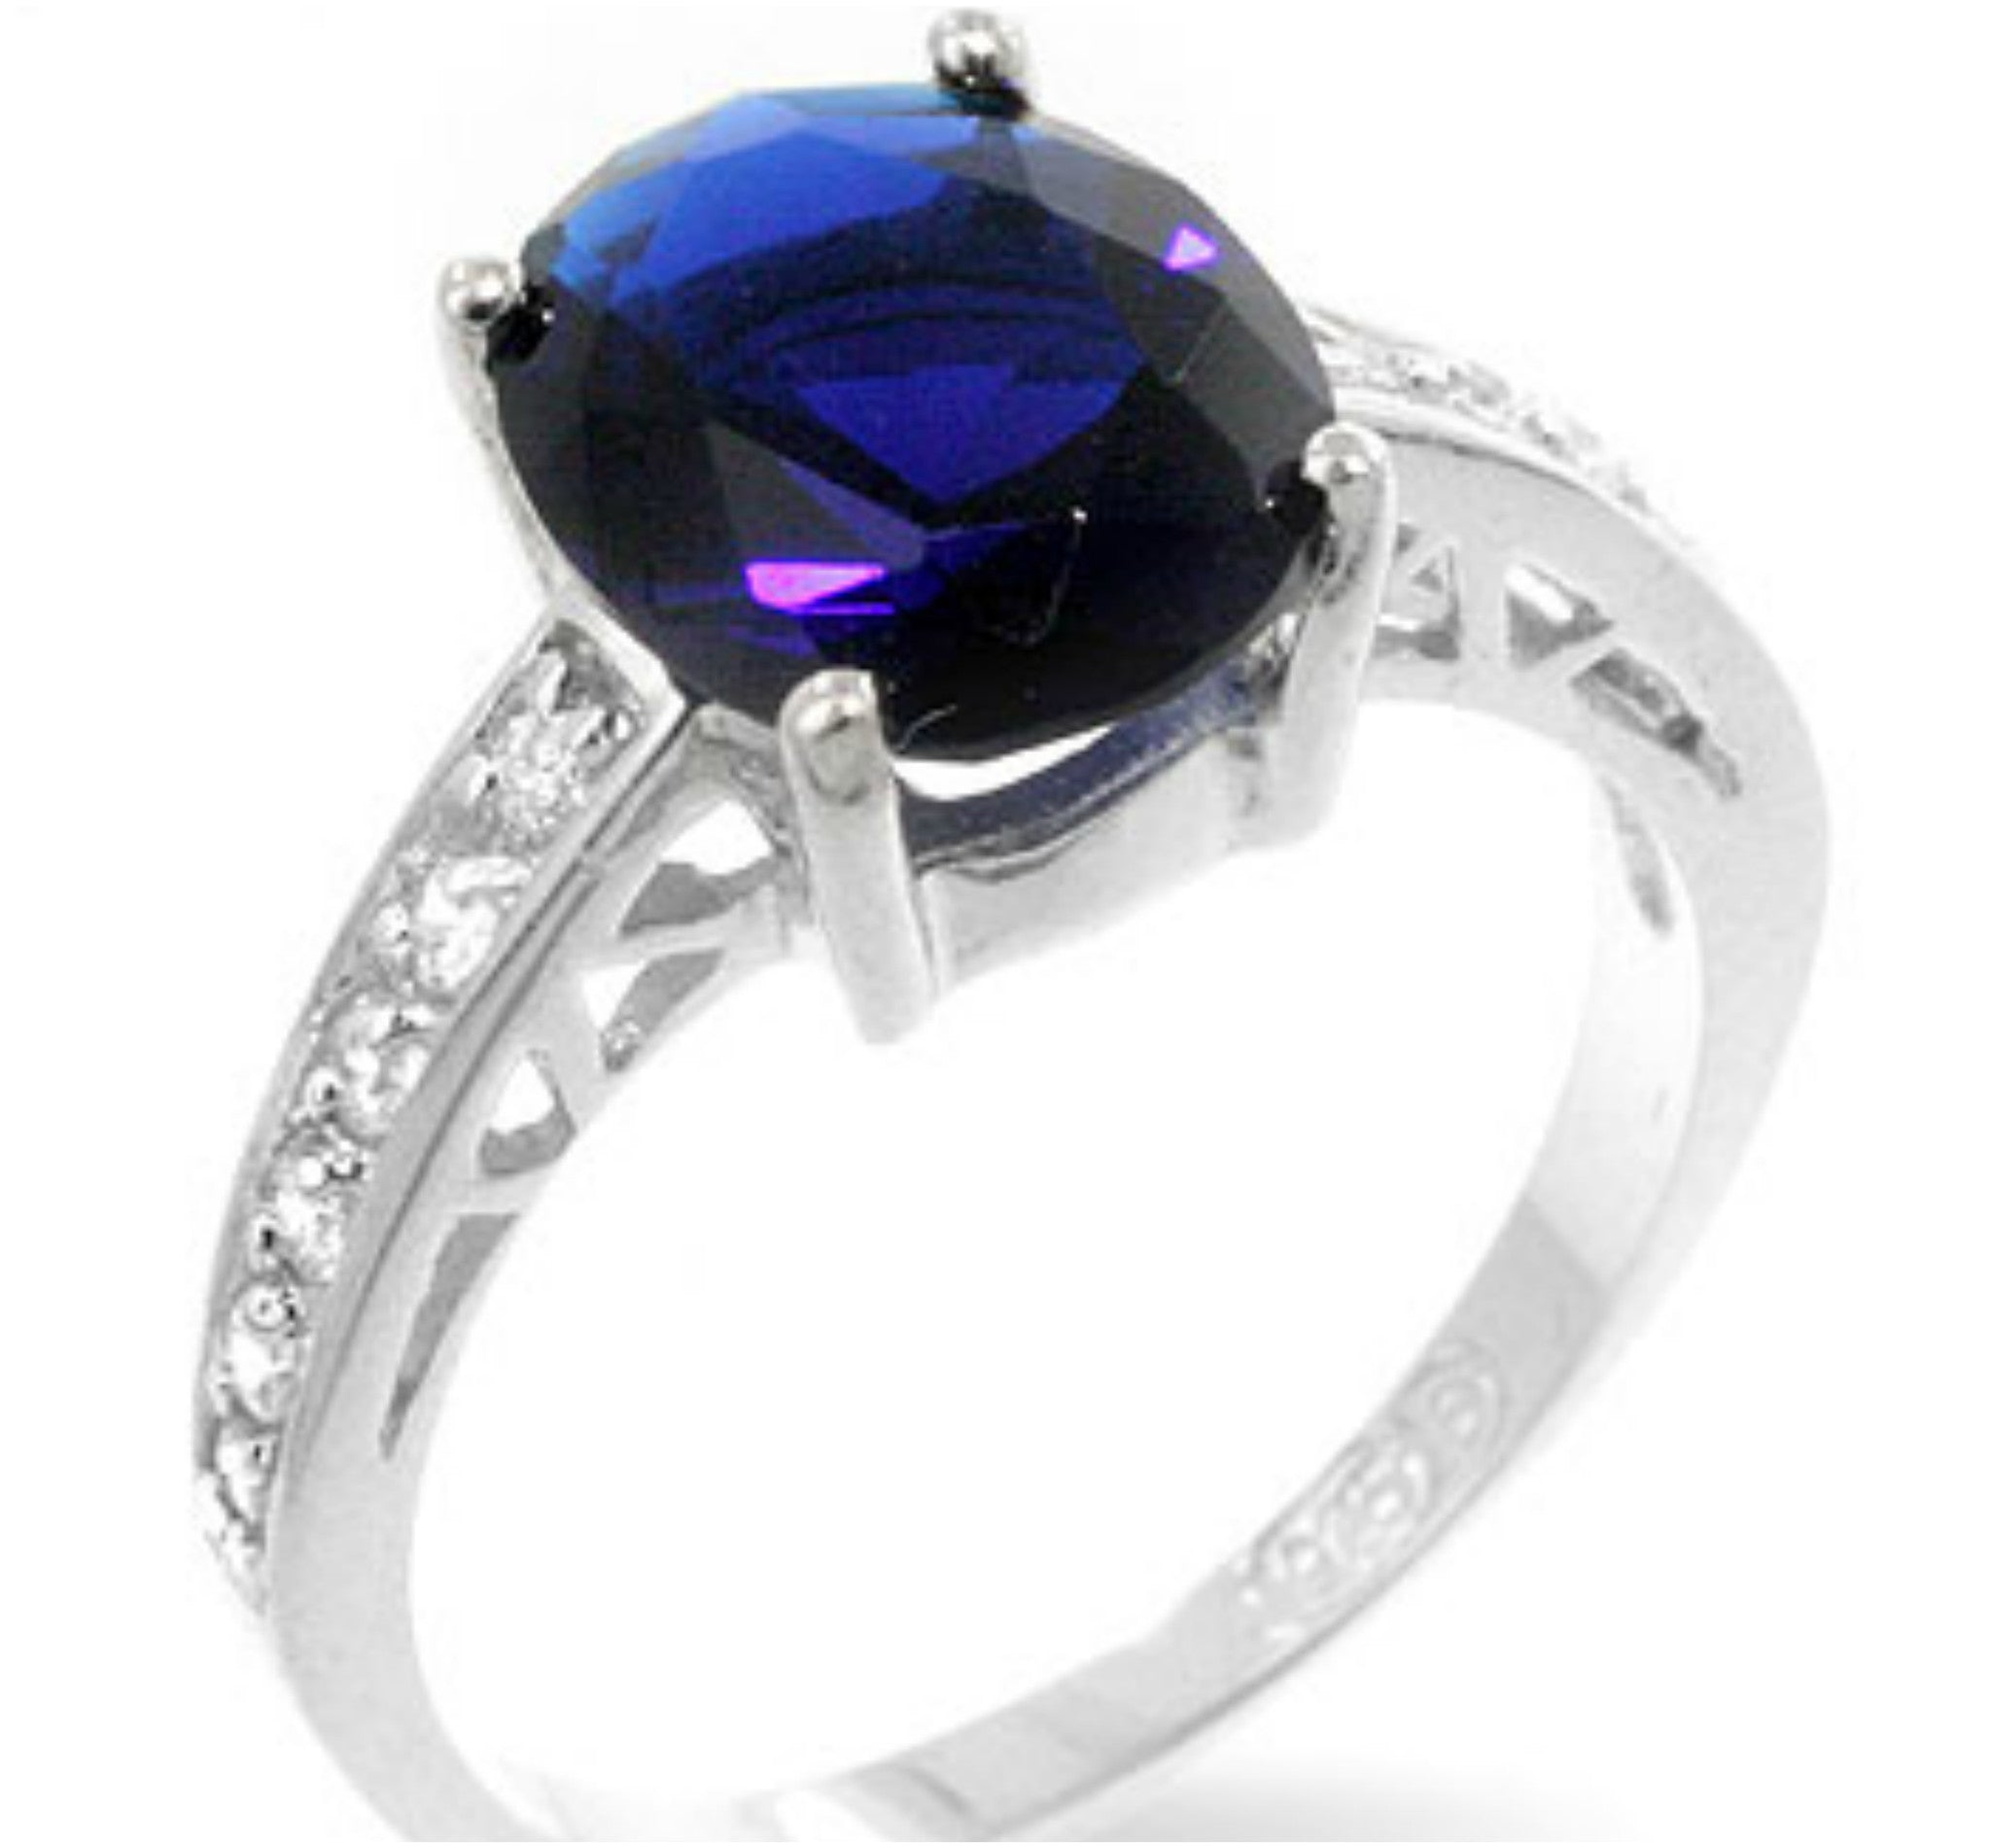 gillot solitaire star listings art rings sapphire jewelry natural paul ring deco co